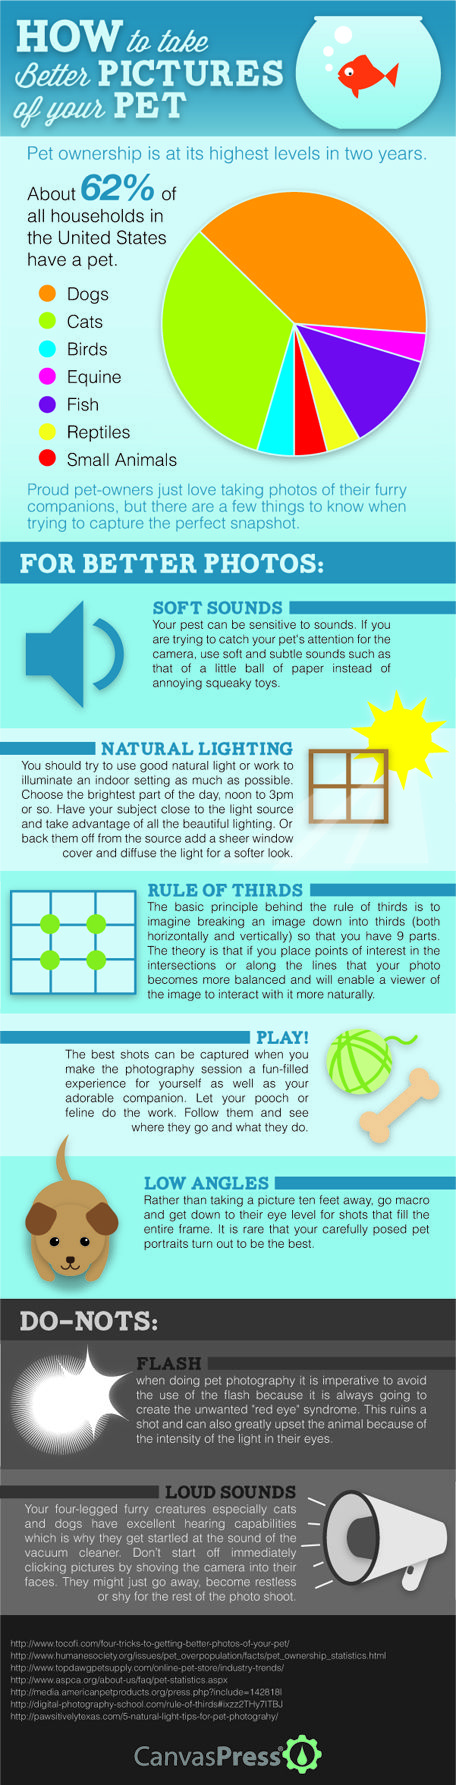 Pet photography infographic